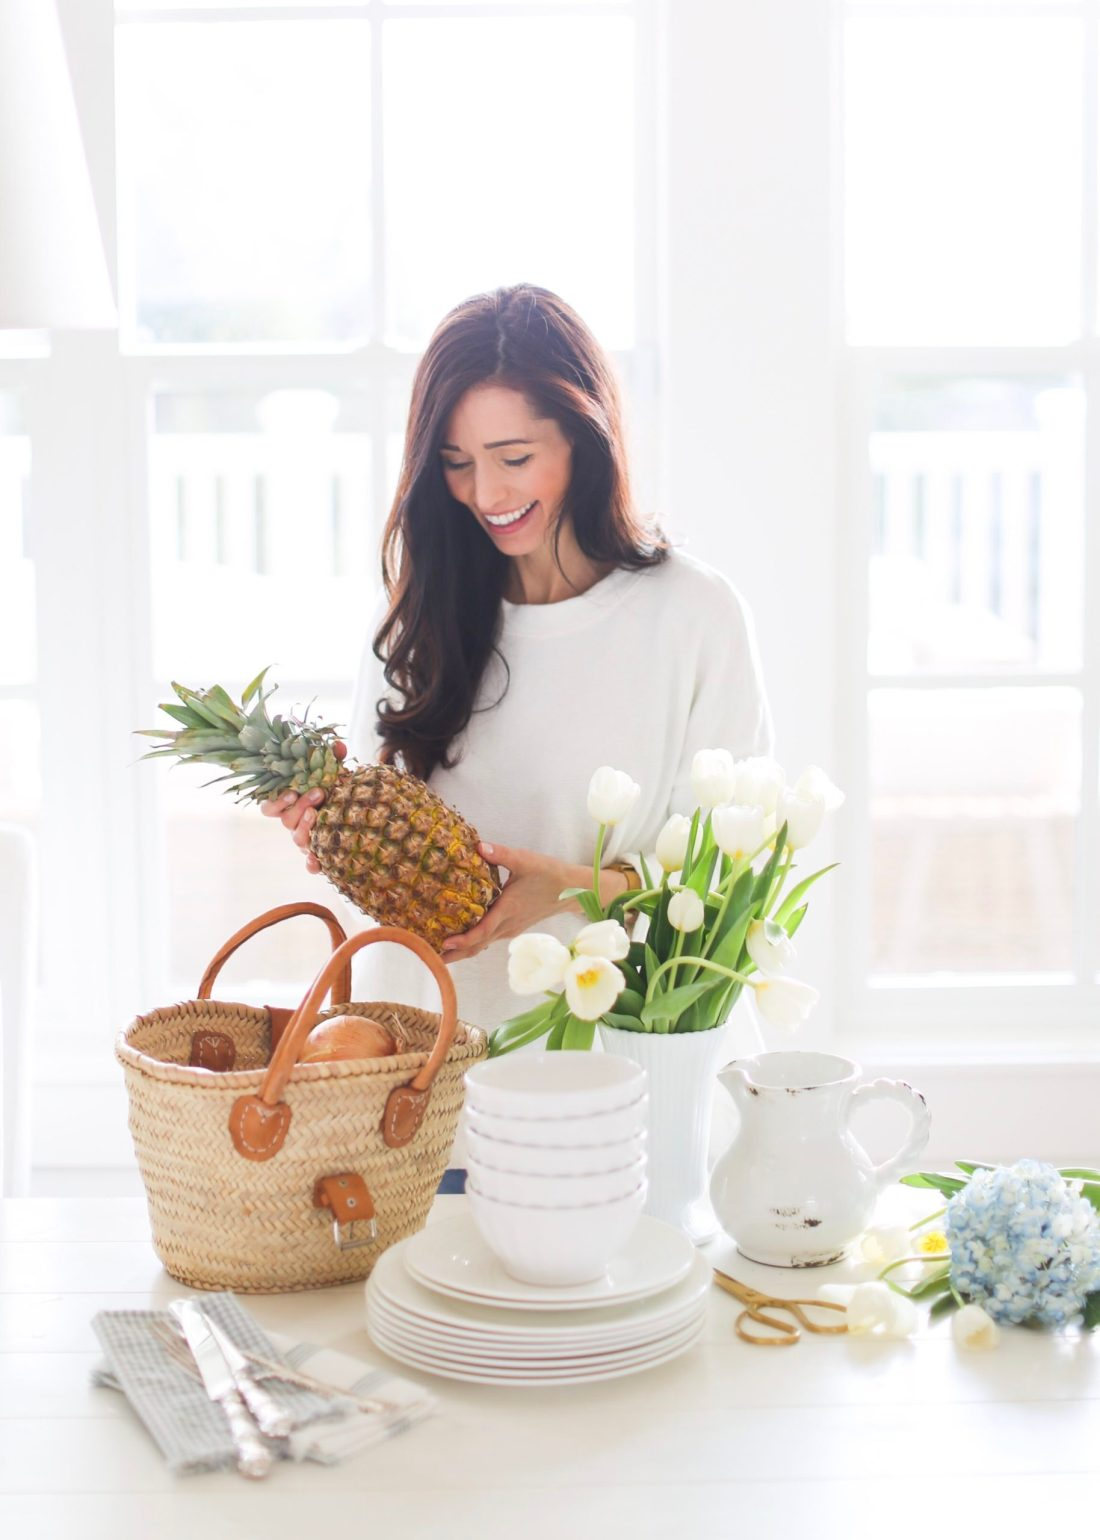 The Fraîche at Home Meal Plan was designed to save you time and money with 4 weeks of dietitian designed healthy weekday meals planned out for you!